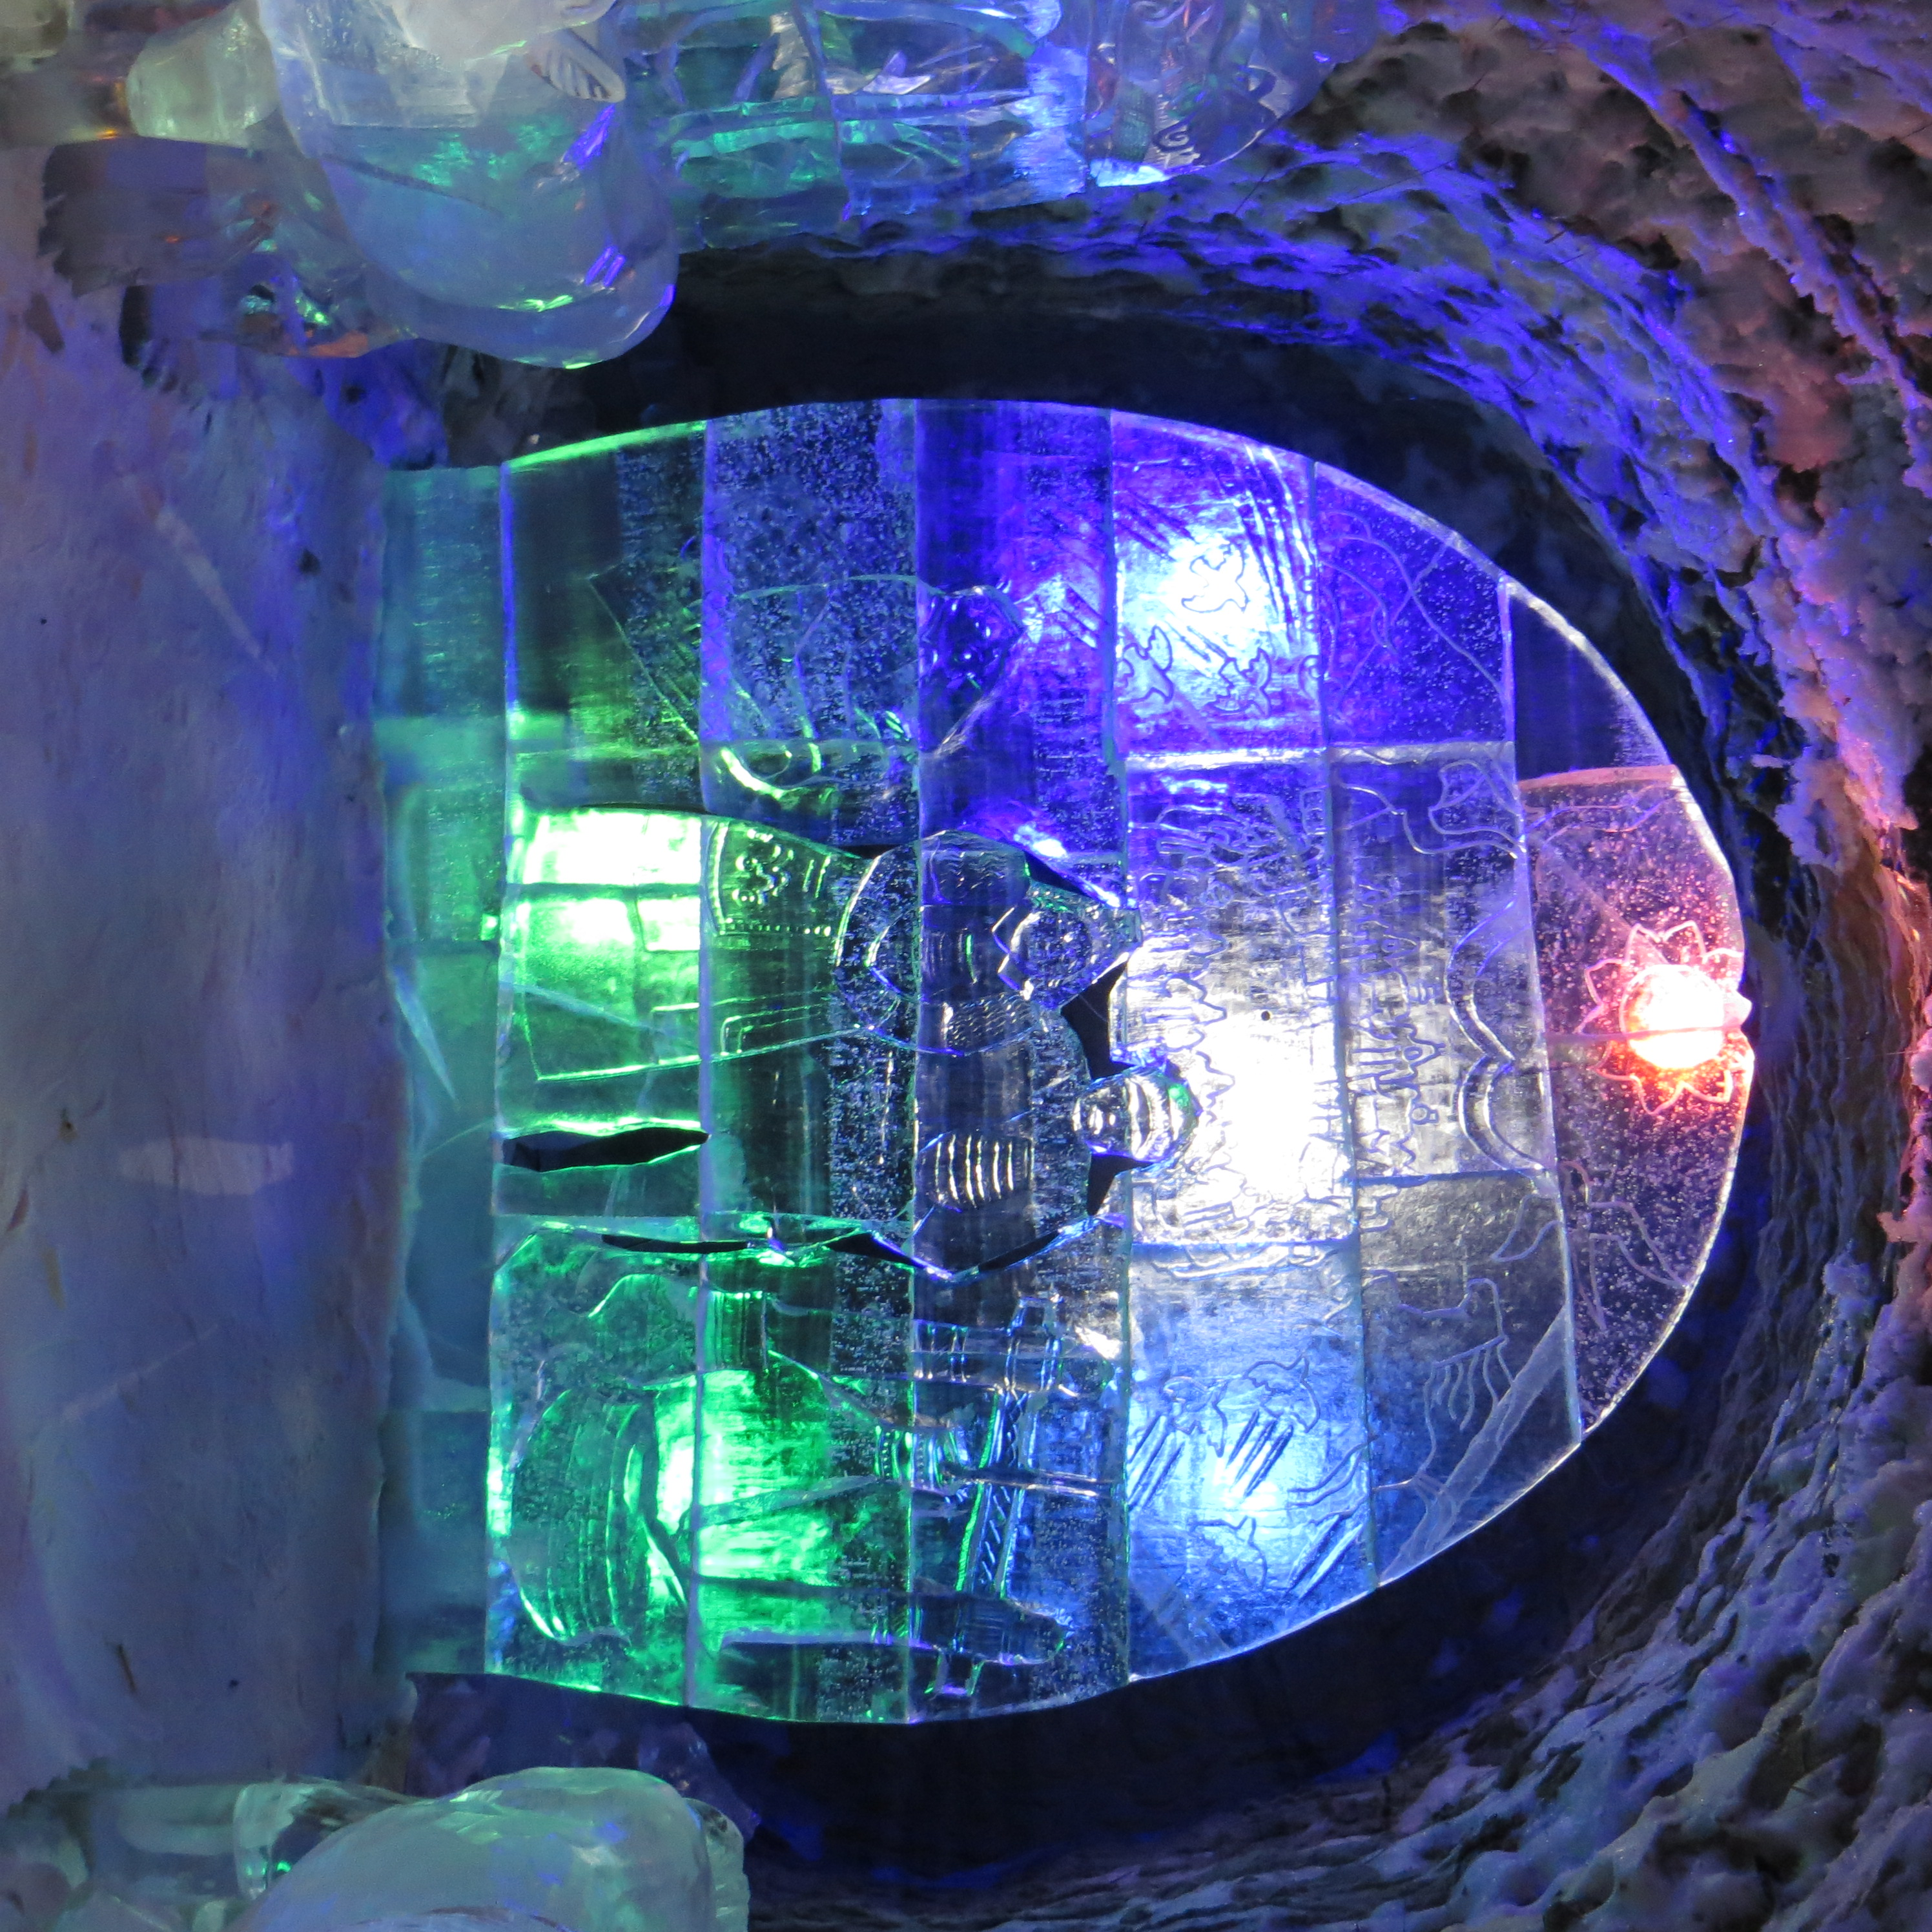 An arch-shaped ice sculpture with patterned engravings. Most prominently depicted are two figures. The sculpture sits in a tunnel with snow on the ceiling and on the ground. There are coloured lights in blue, red and green shining through from behind the ice sculpture.